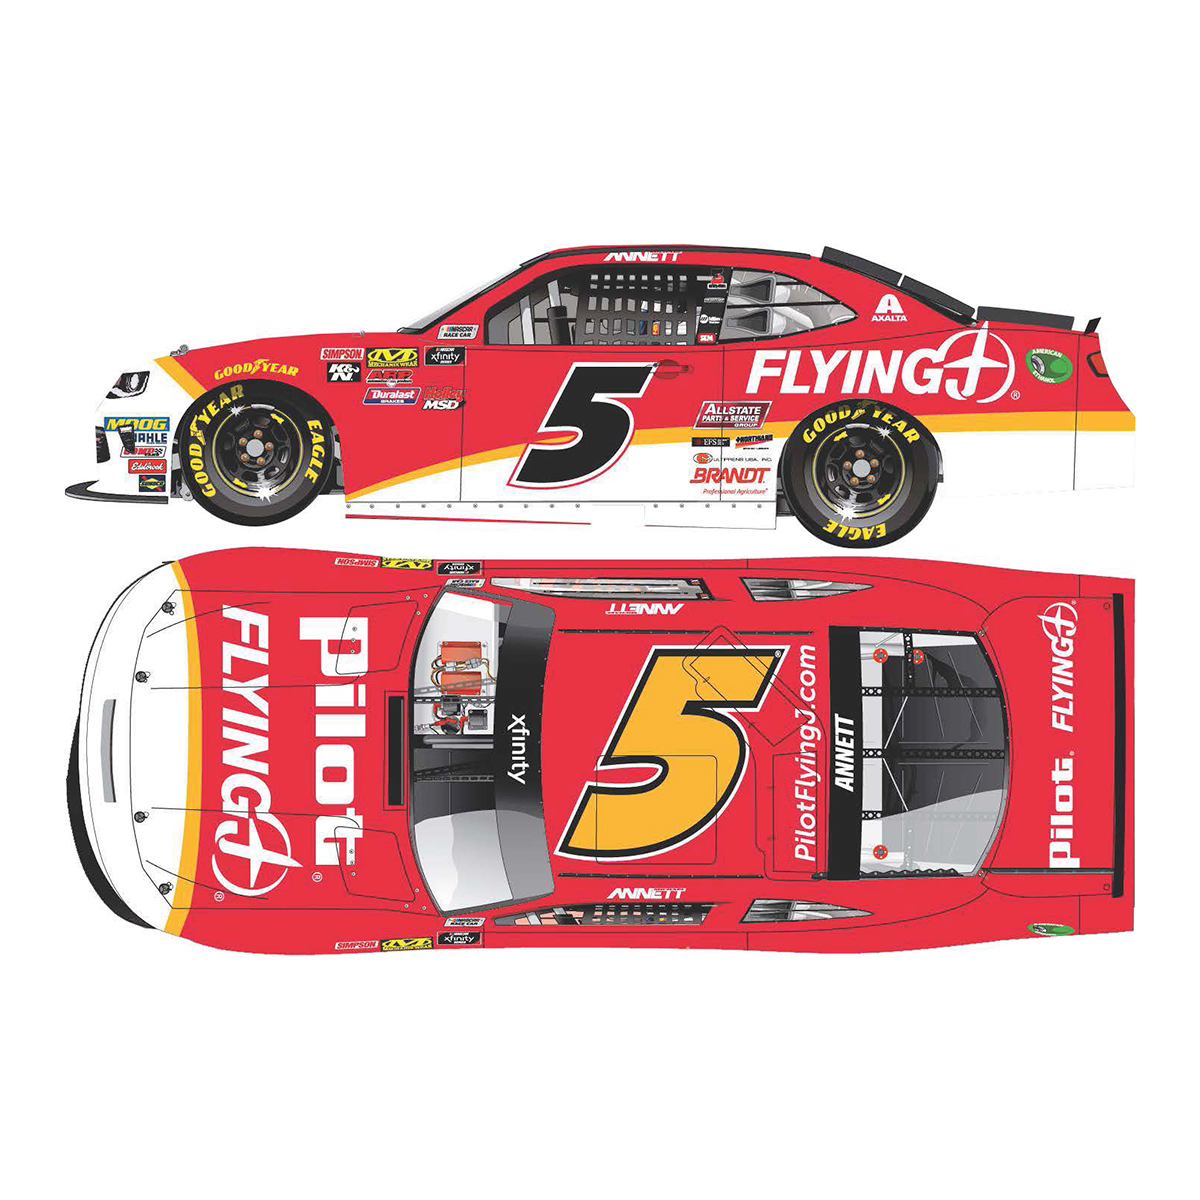 Michael Annett 2018 NASCAR Xfinity Series No. 5 Pilot Flying J HO 1:64 Die-Cast